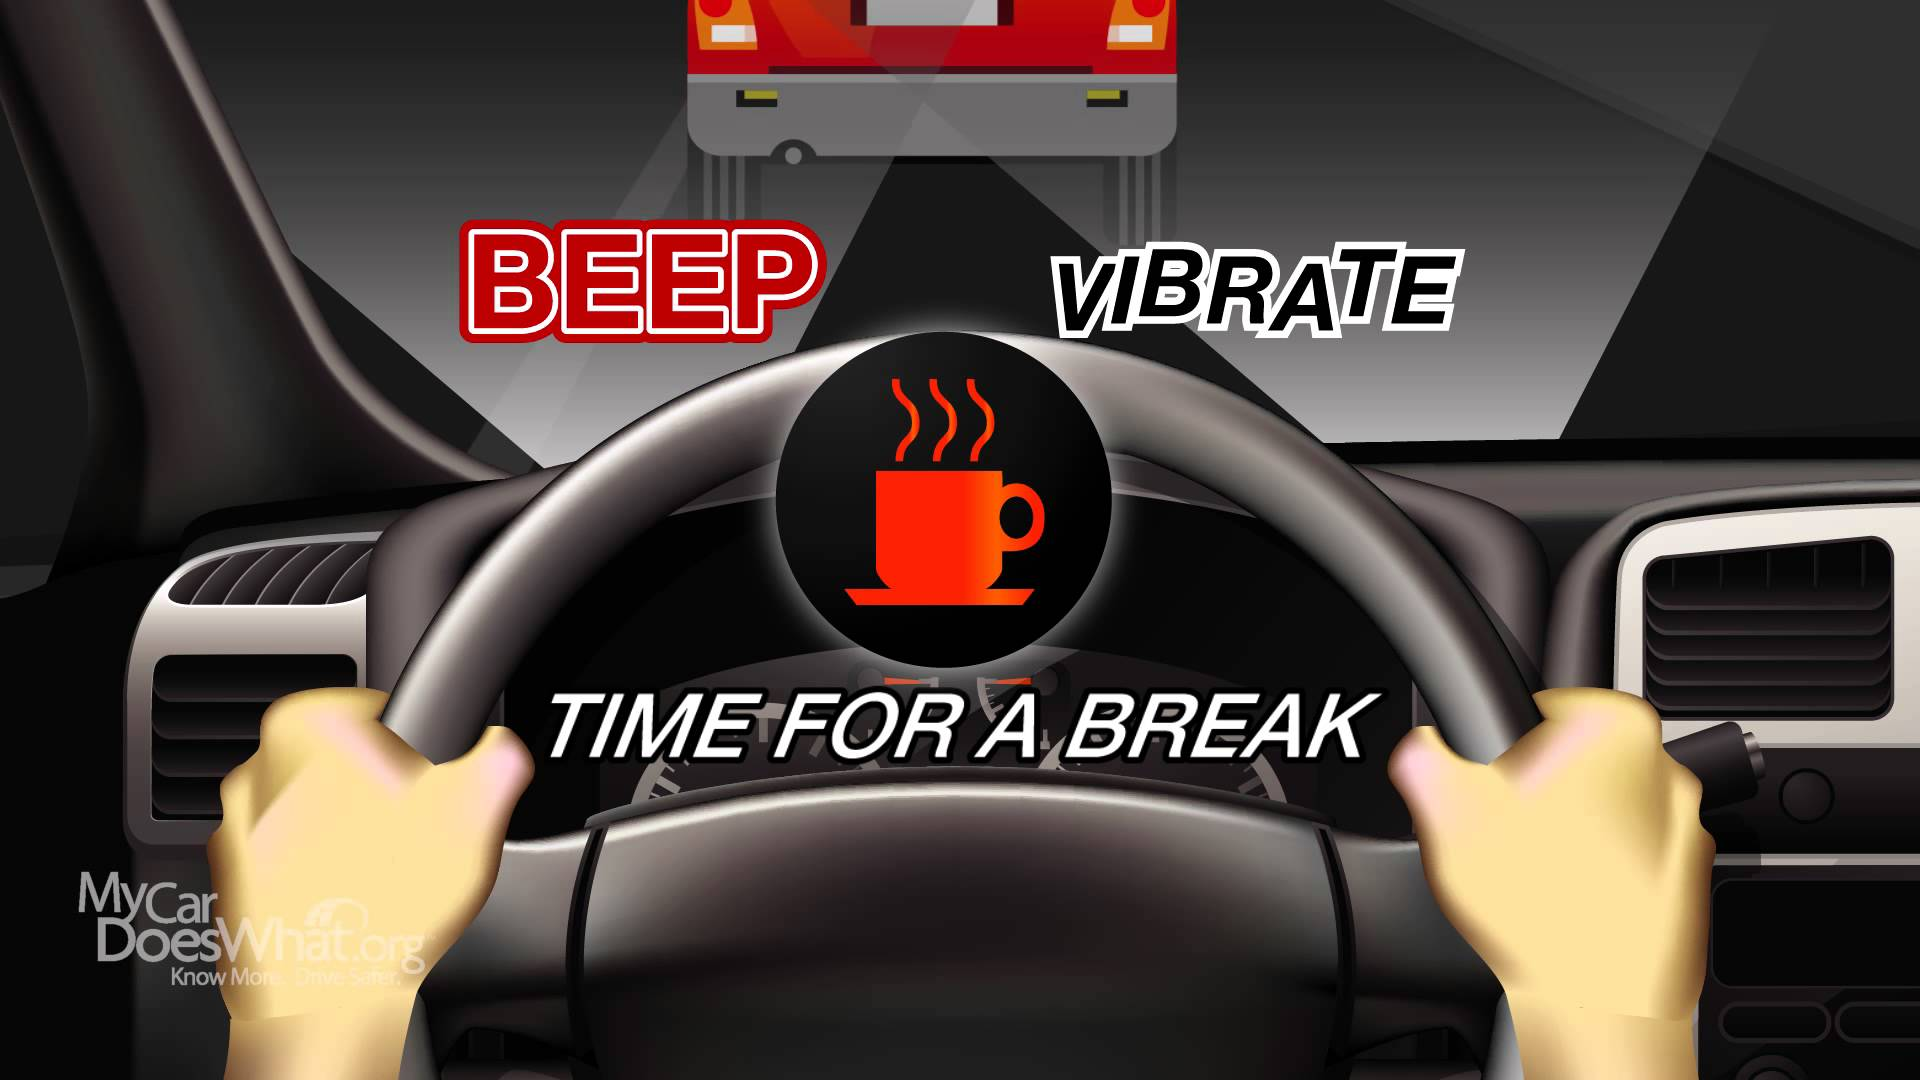 Drowsiness Alert Quick Guide My Car Does What